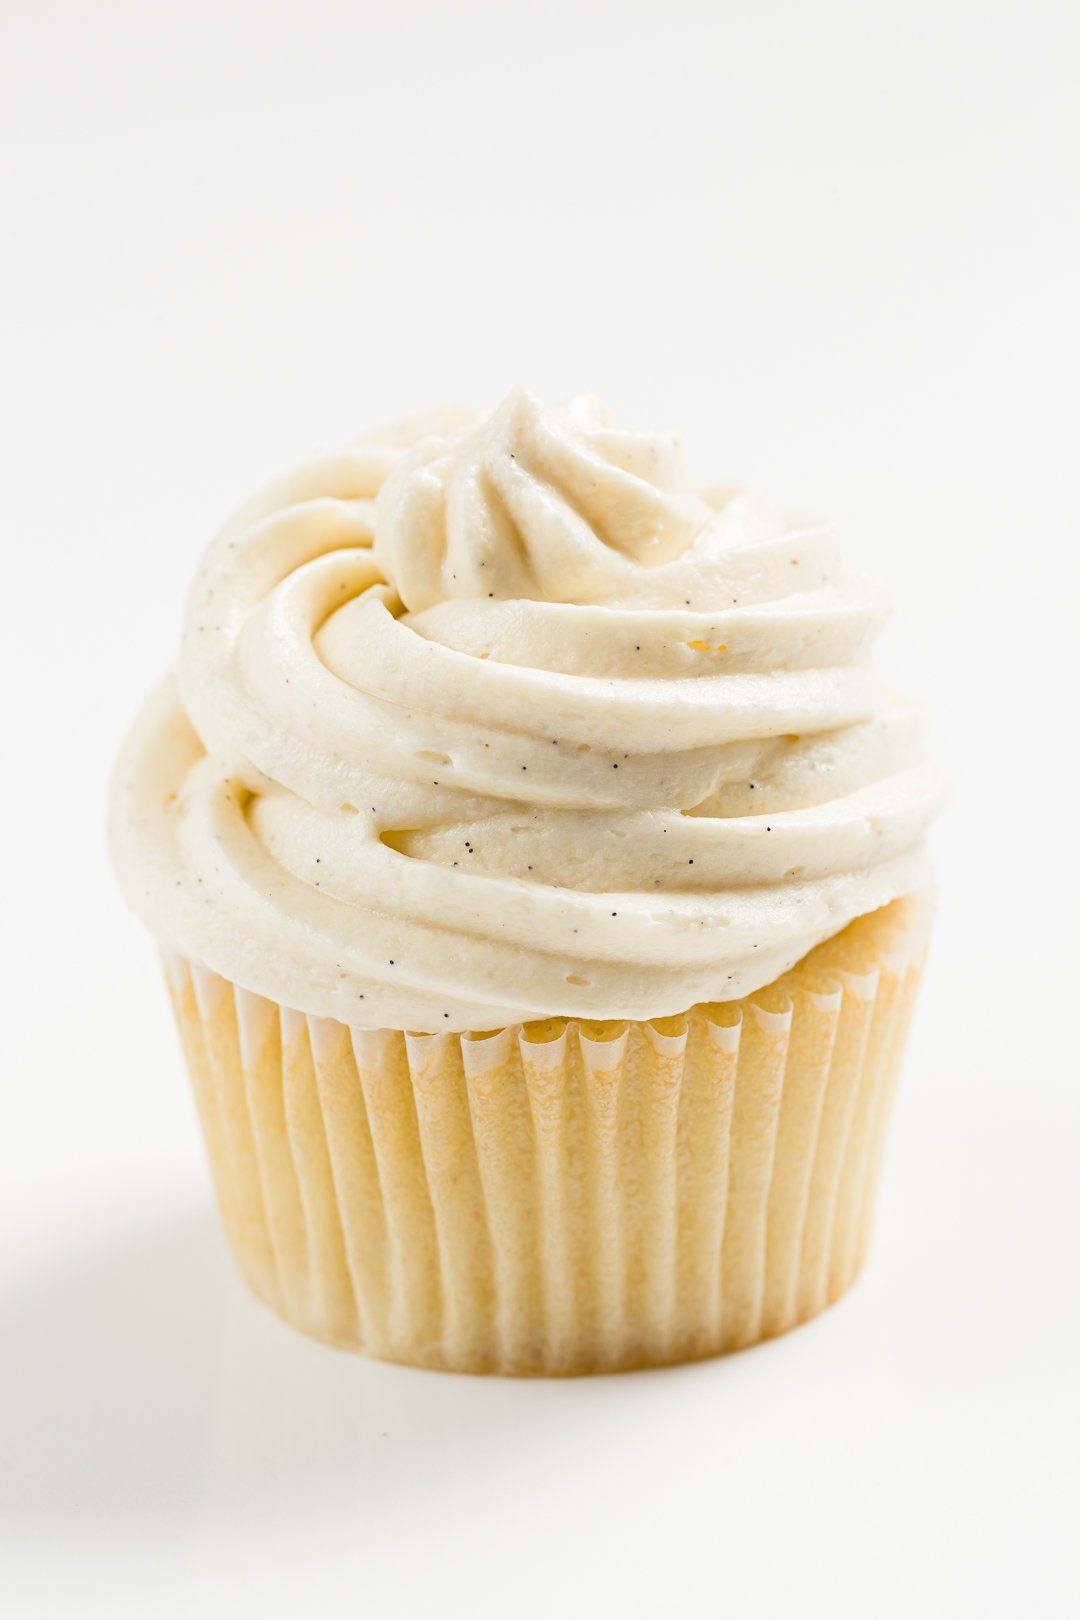 Sour Cream Frosting Tangy And Sweet Buttercream Recipe In 2020 Sour Cream Frosting Sour Cream Recipes Sour Cream Icing